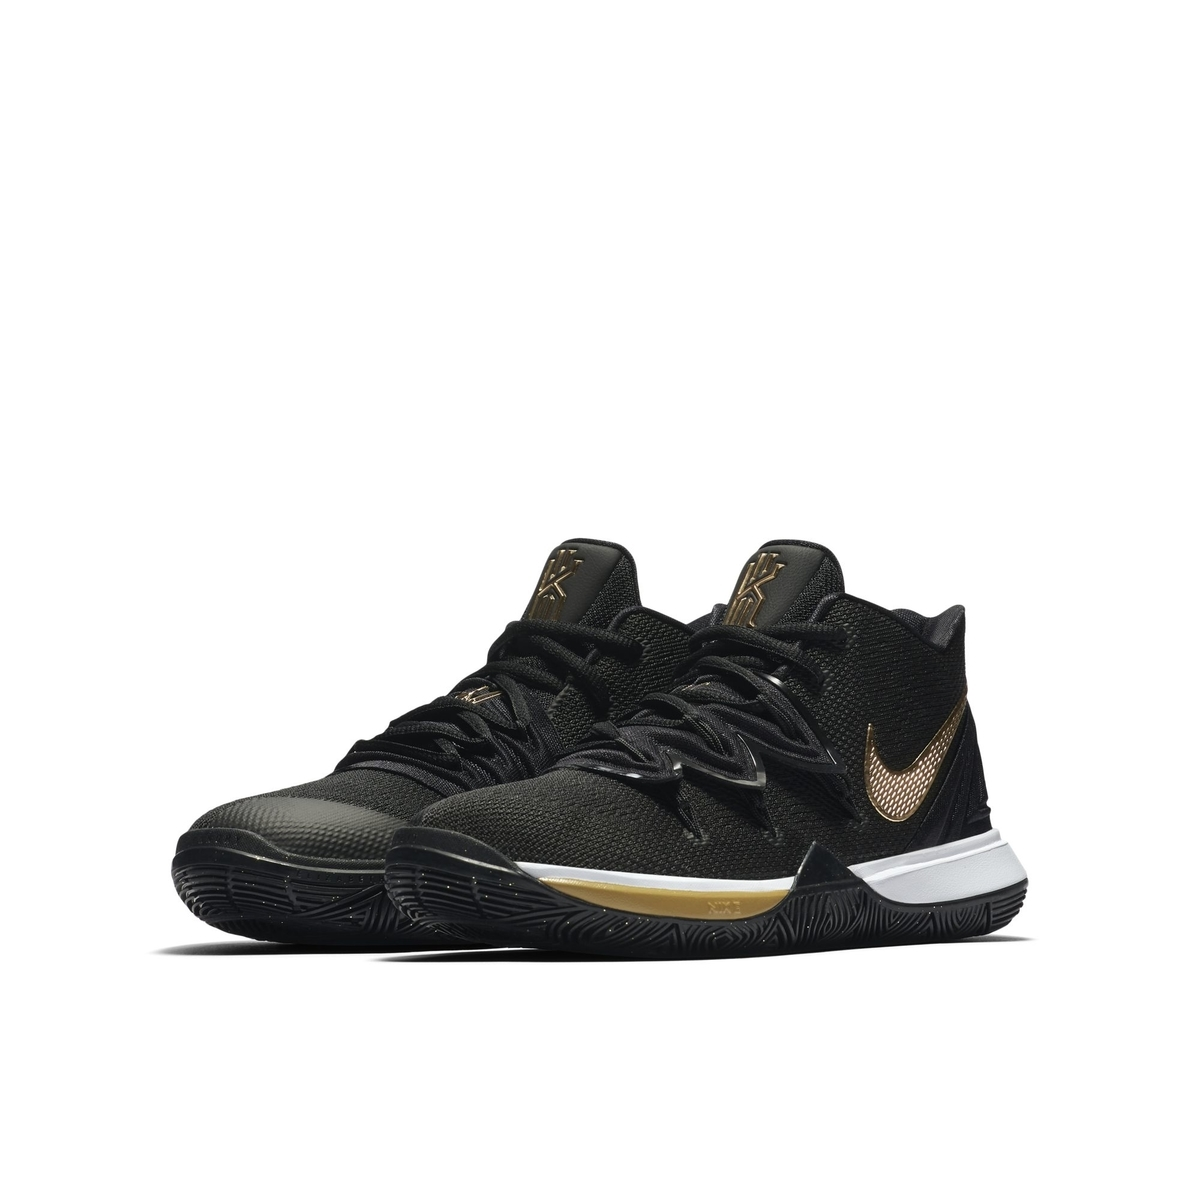 NIKE KYRIE 5 BG BLACK:METALLIC GOLD:WHITE:WOLF GREY 1